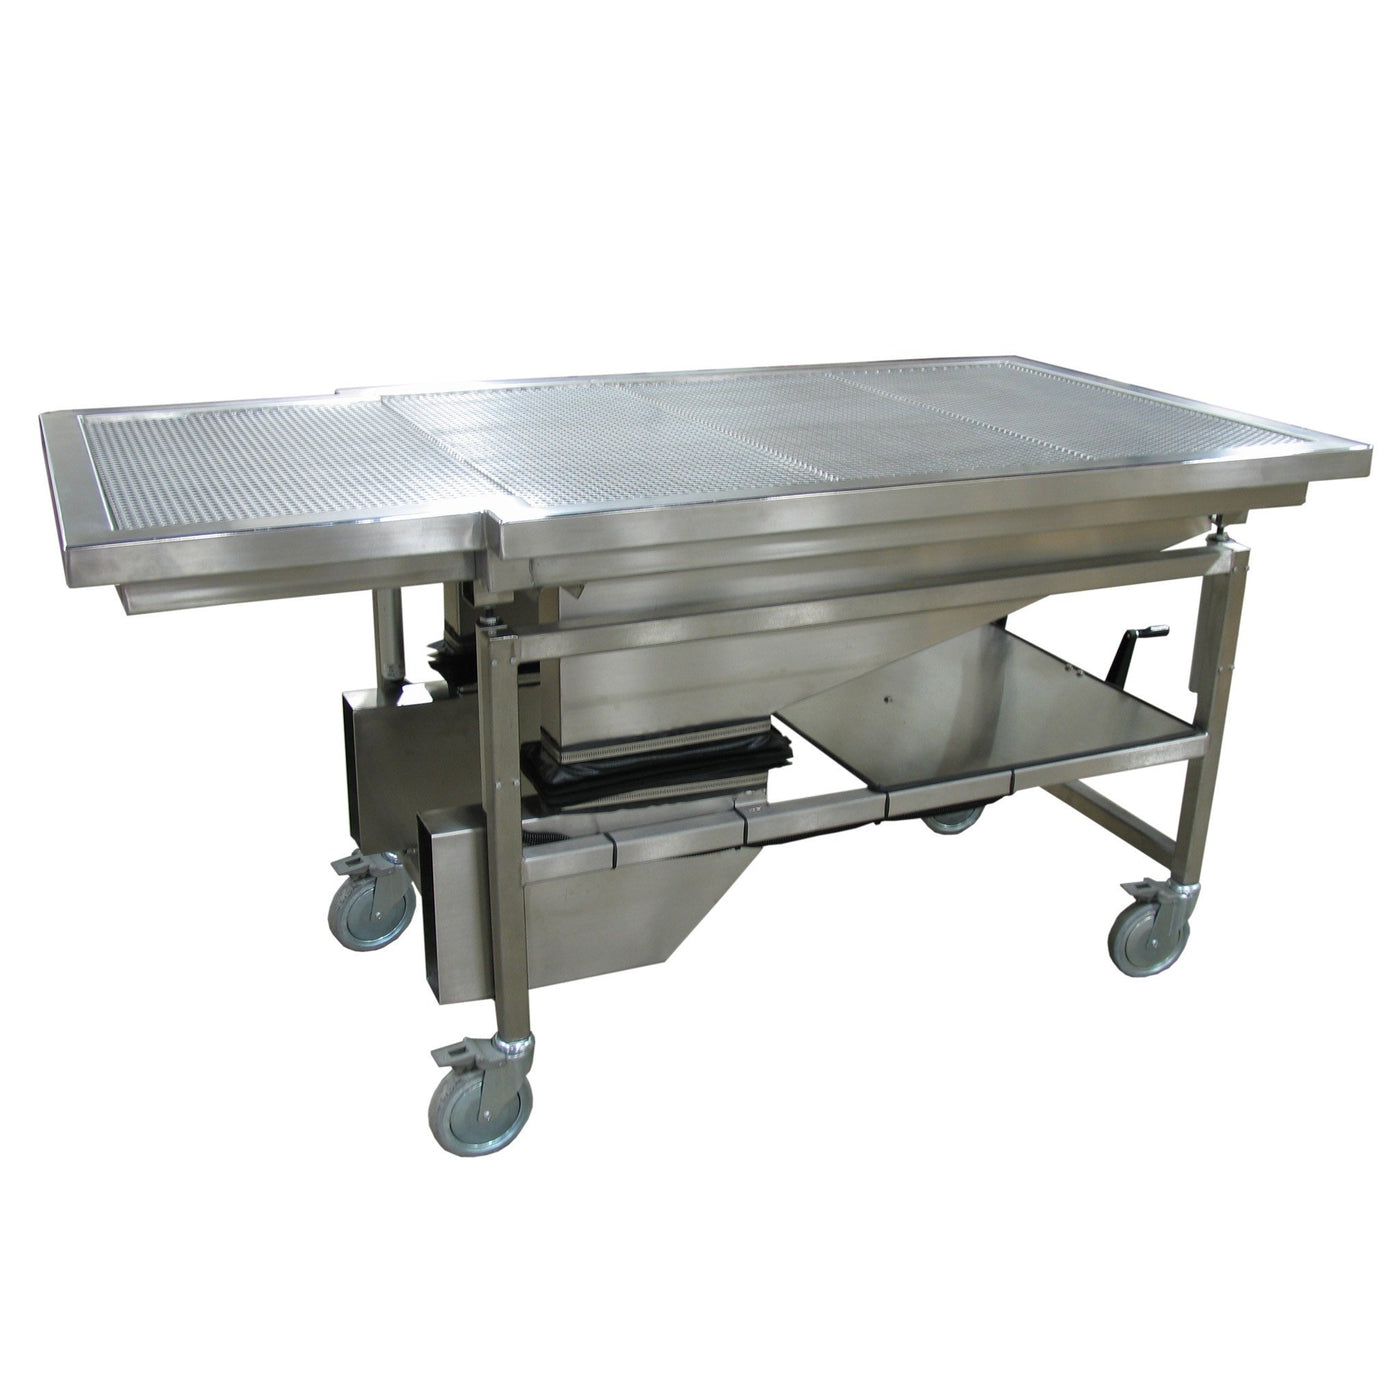 Ventilated Dissection Carrier-Anatomy Dissection Tables-Mortech Manufacturing Company Inc. Quality Stainless Steel Autopsy, Morgue, Funeral Home, Necropsy, Veterinary / Anatomy, Dissection Equipment and Accessories